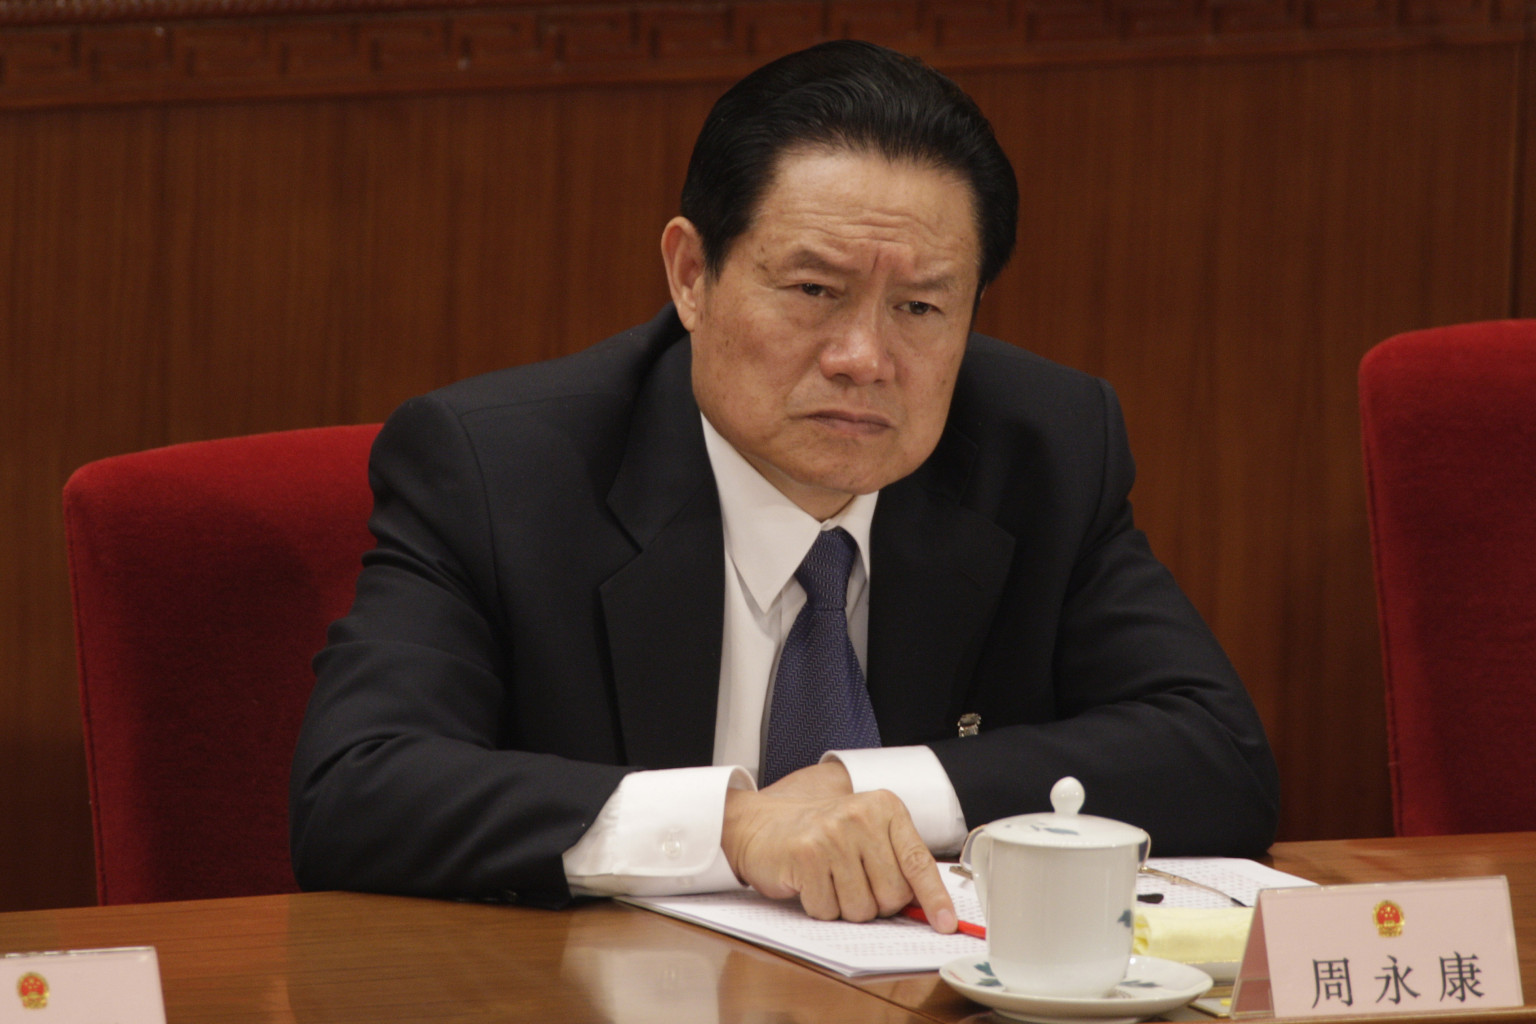 File Photo:  Zhou Yongkang, former member of the Standing Committee of the Political Bureau of the Chinese Communist Party (CCP) Central Committee.